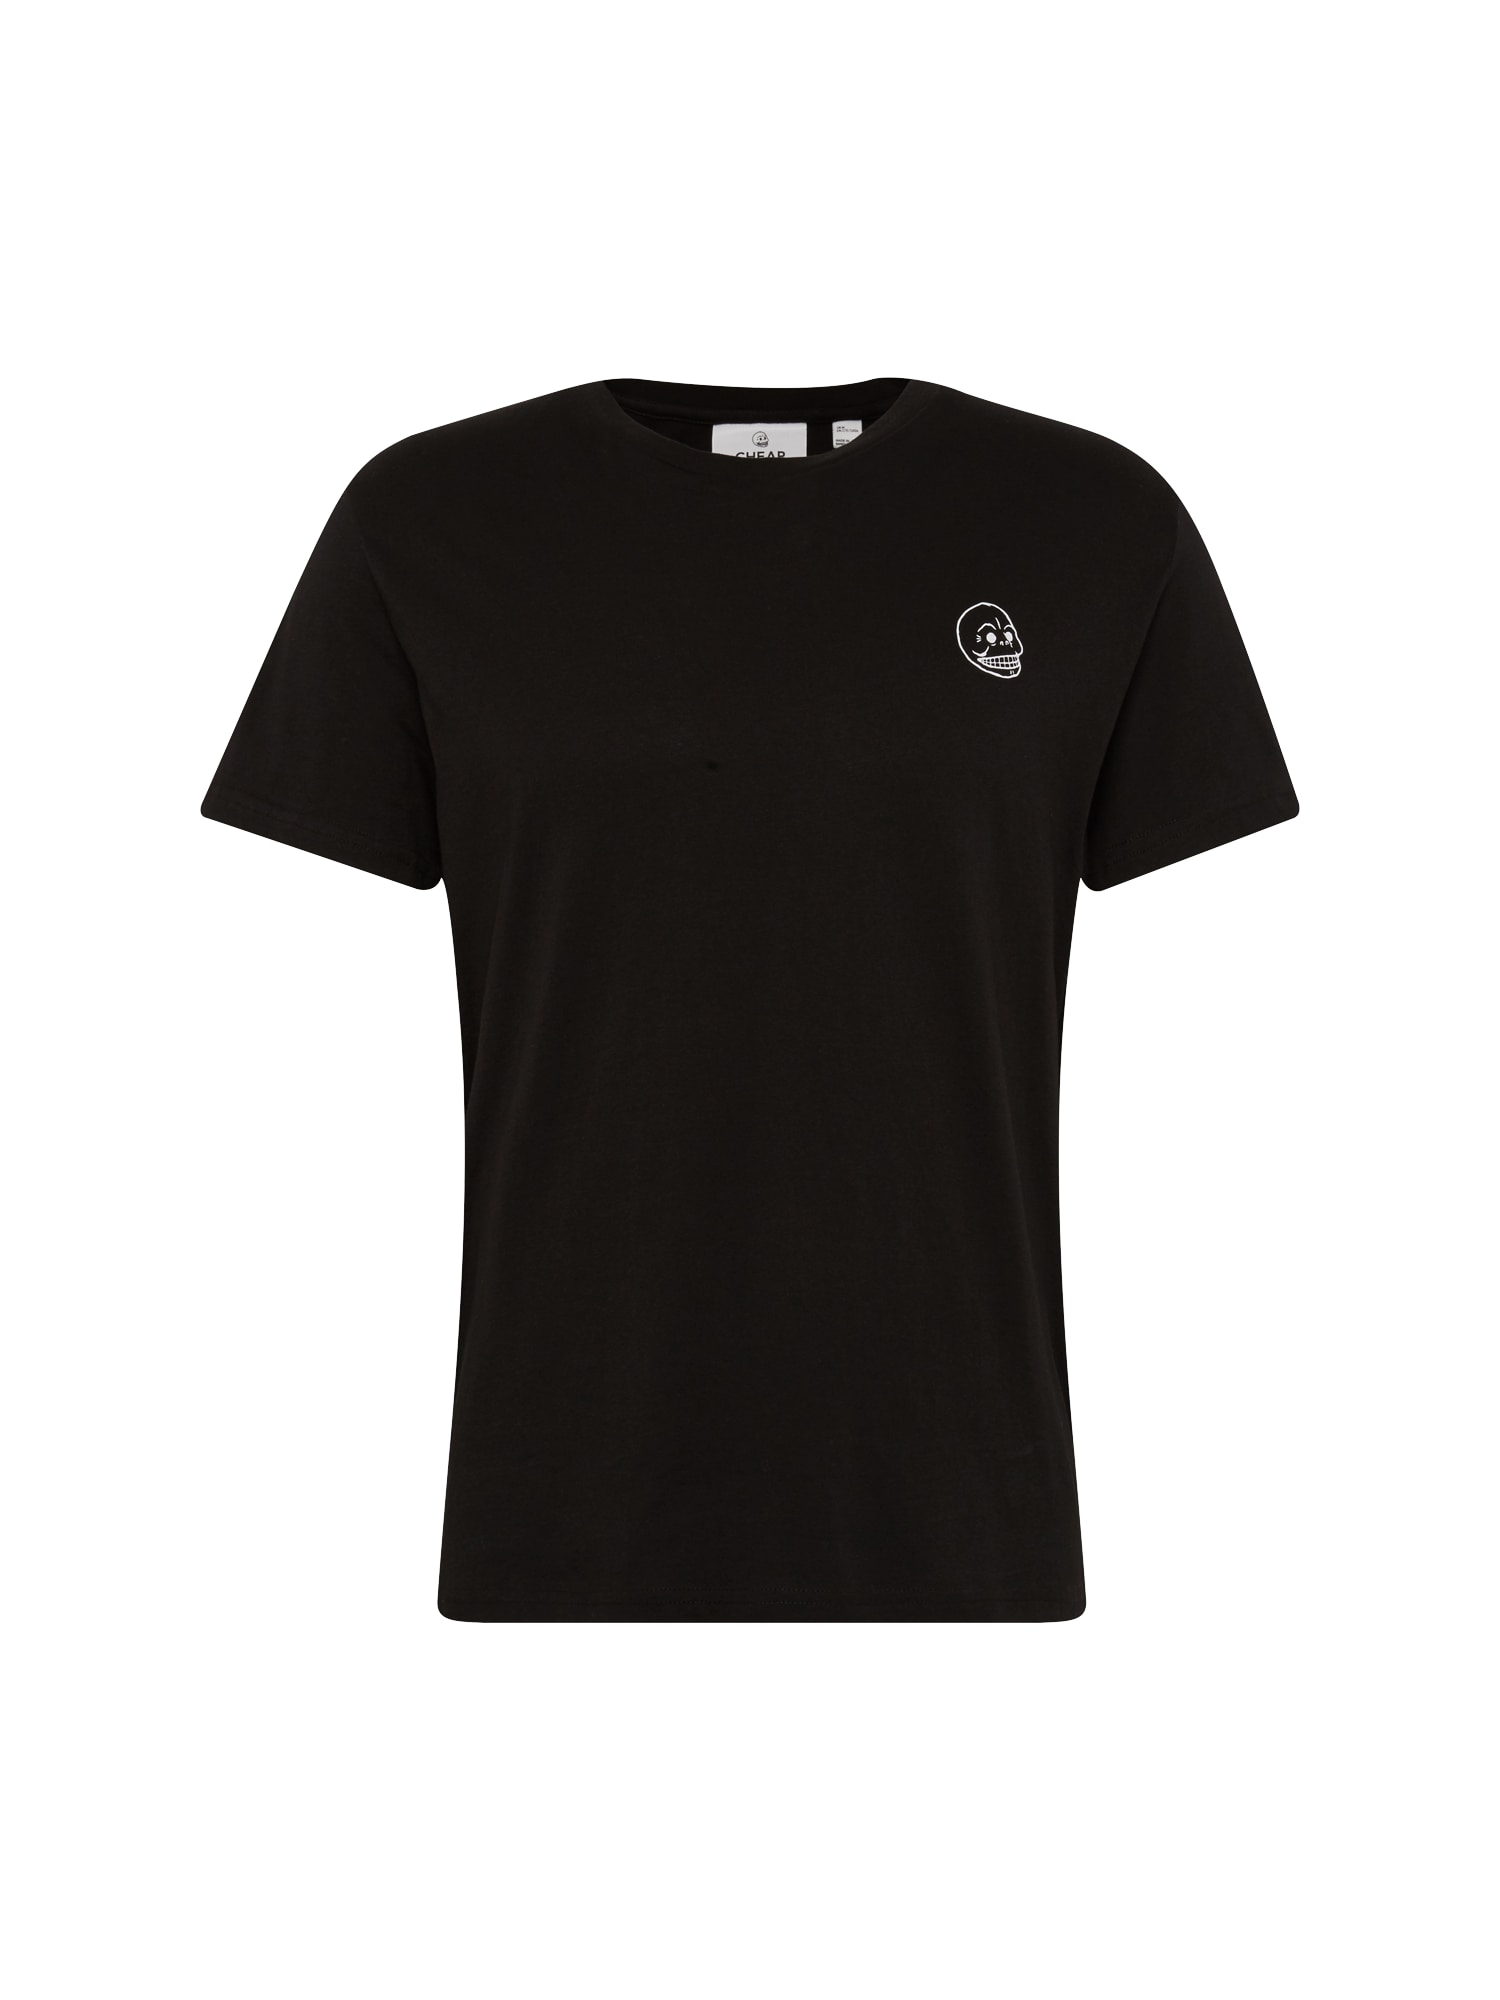 CHEAP MONDAY Heren Shirt Standard tee Tiny skull zwart